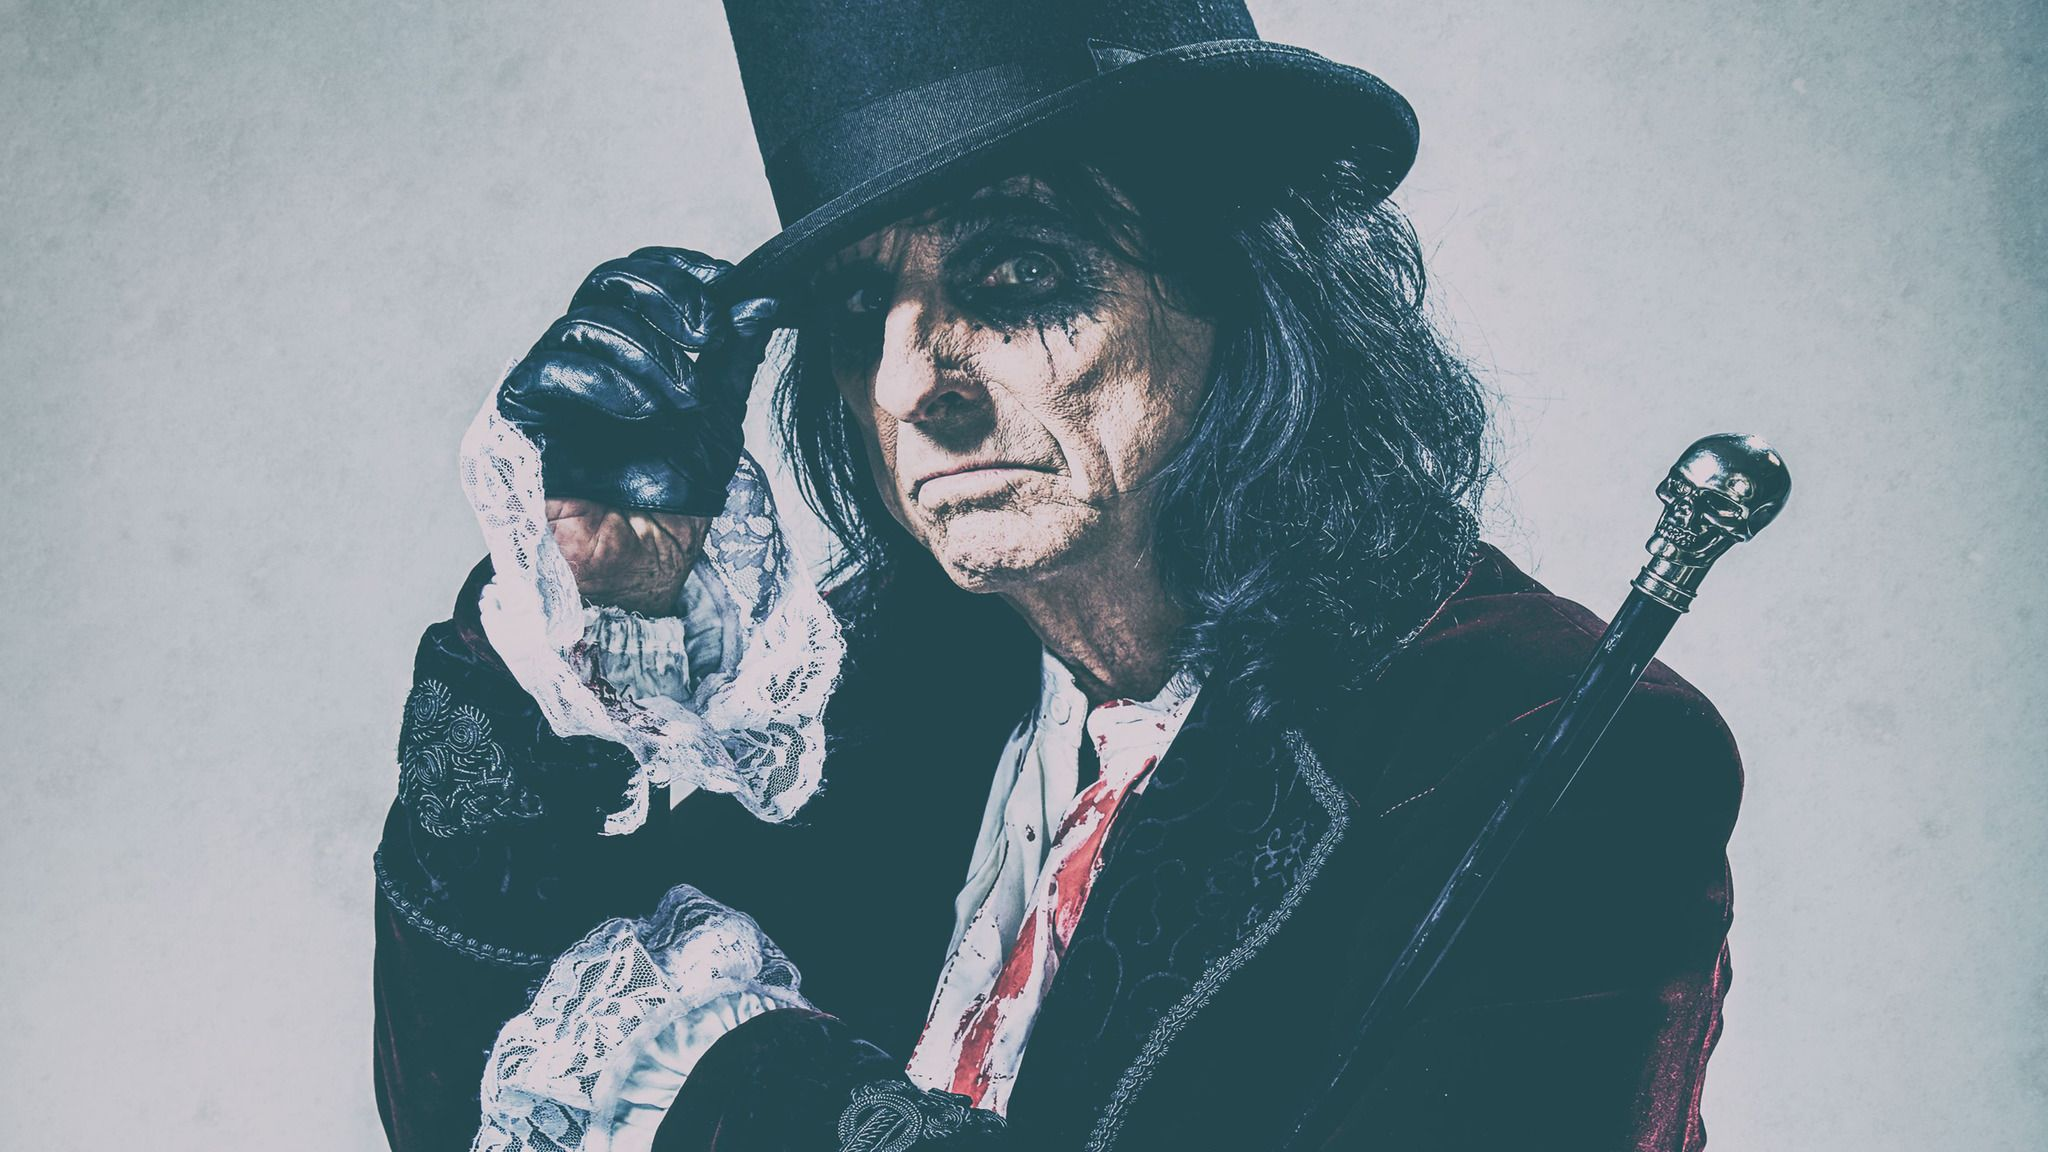 Alice Cooper - with special guest Black Stone Cherry